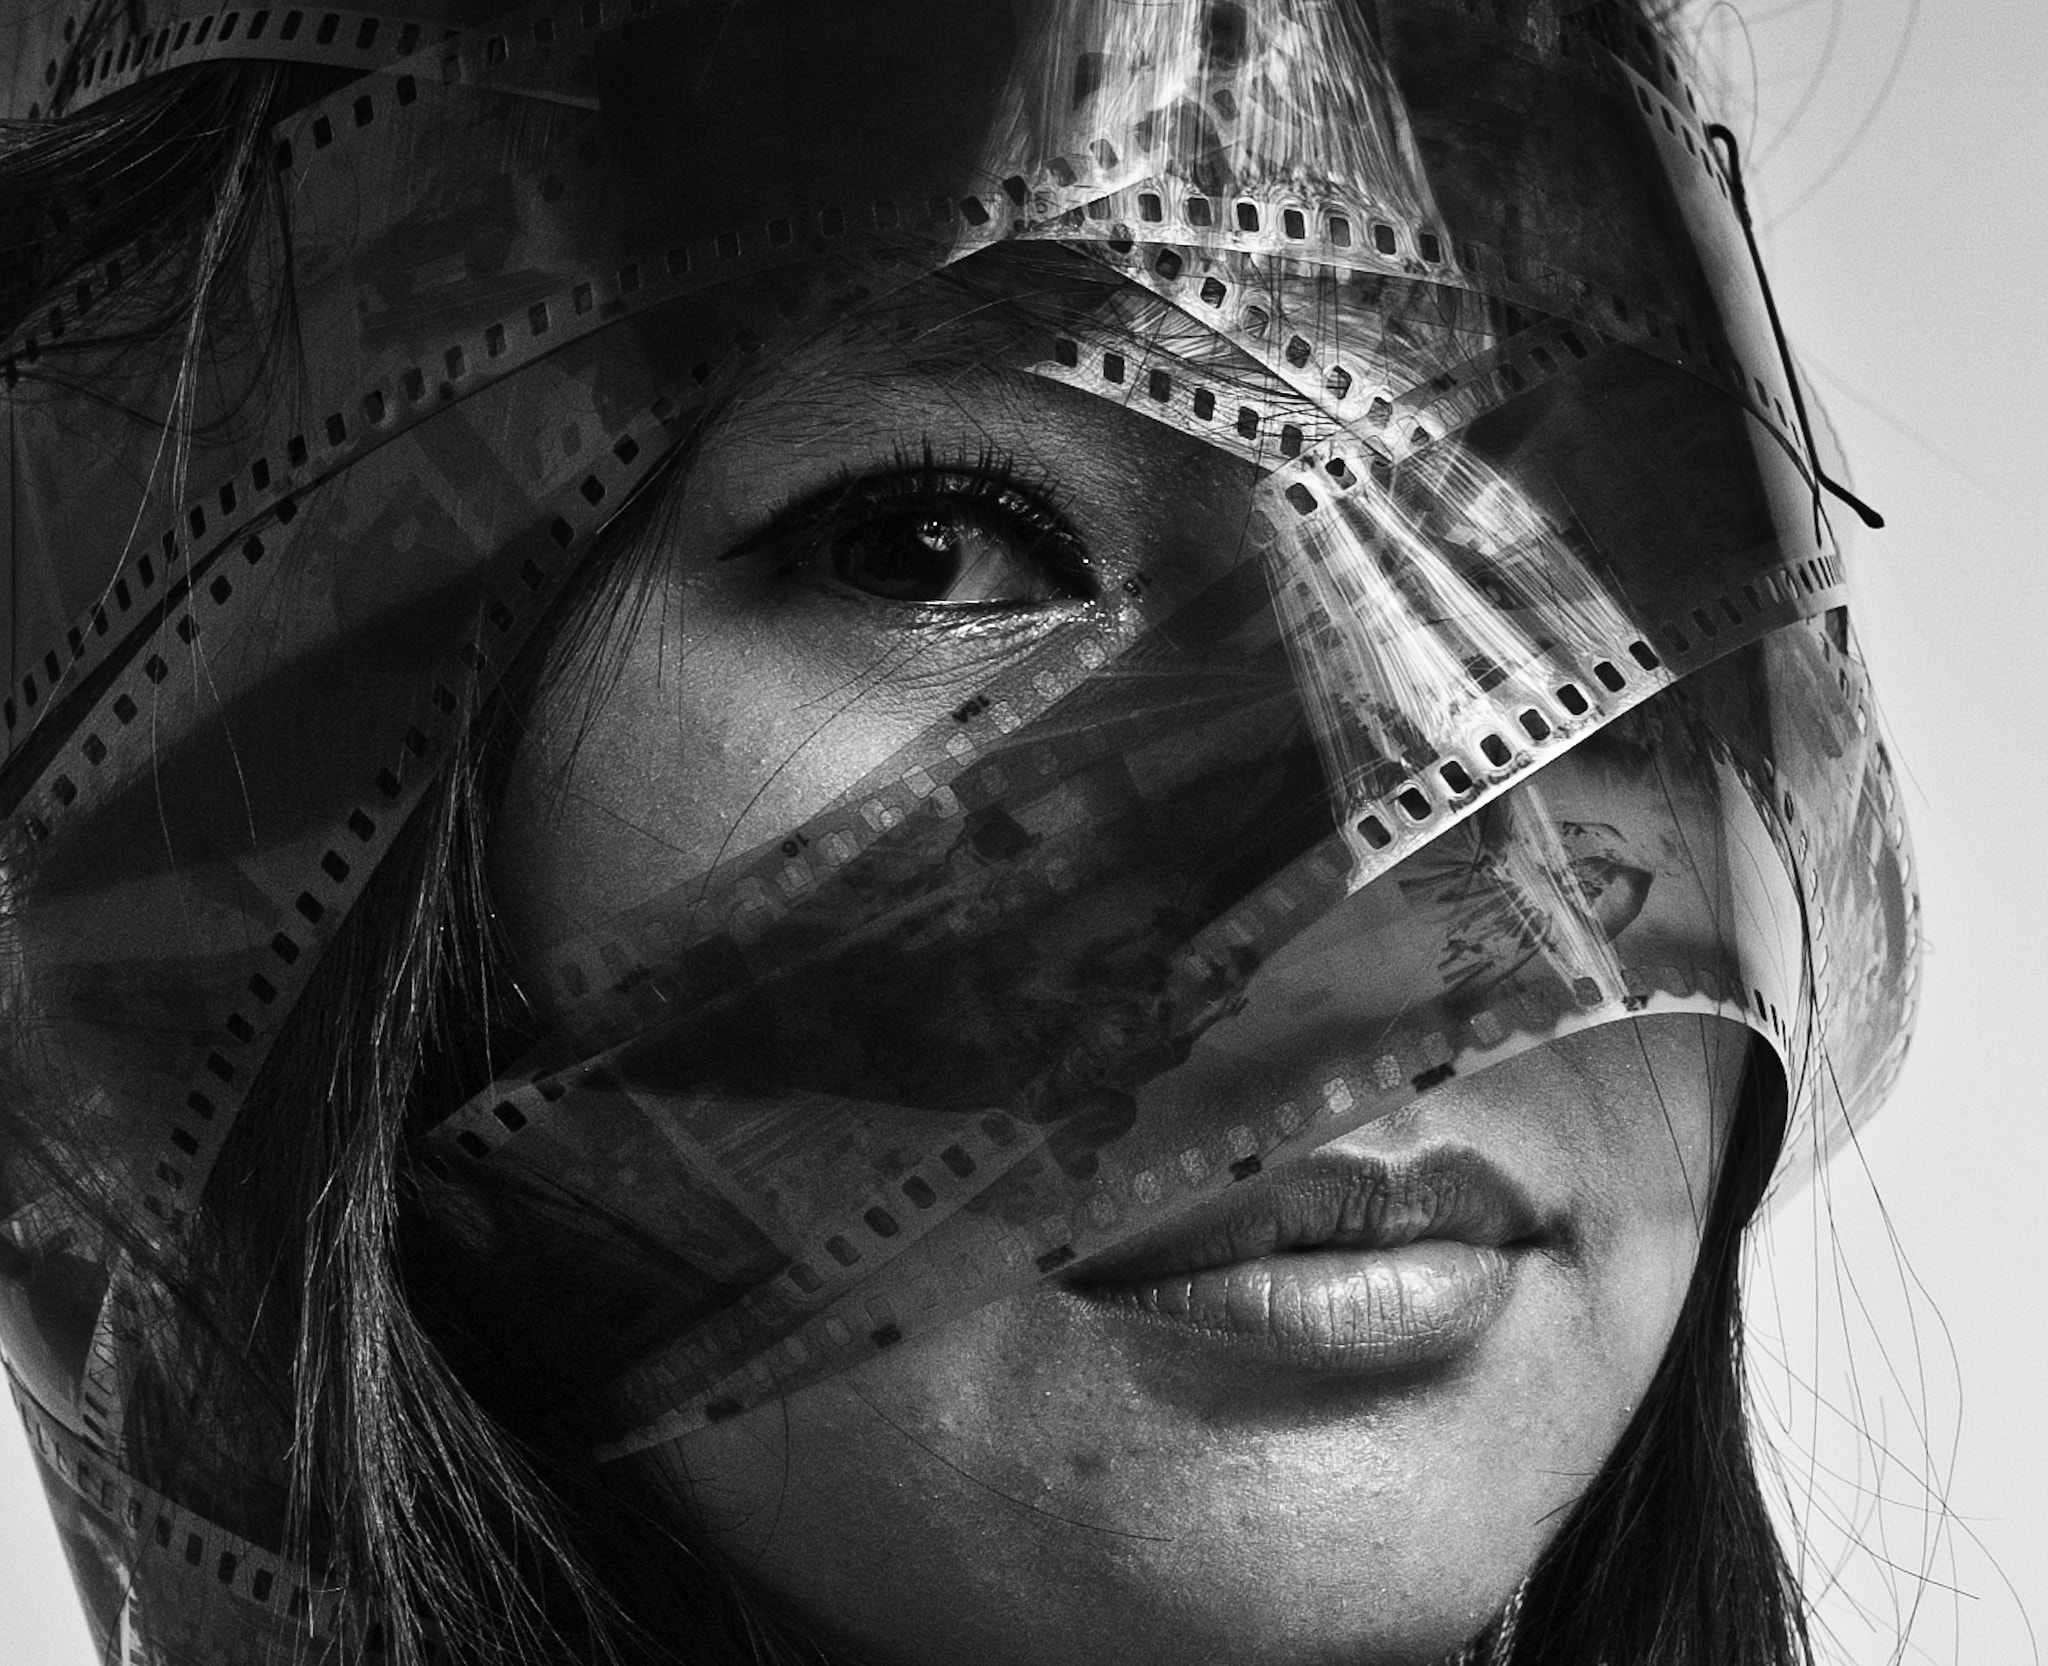 Photograph Celluloid Girl by Agastya Alfath on 500px